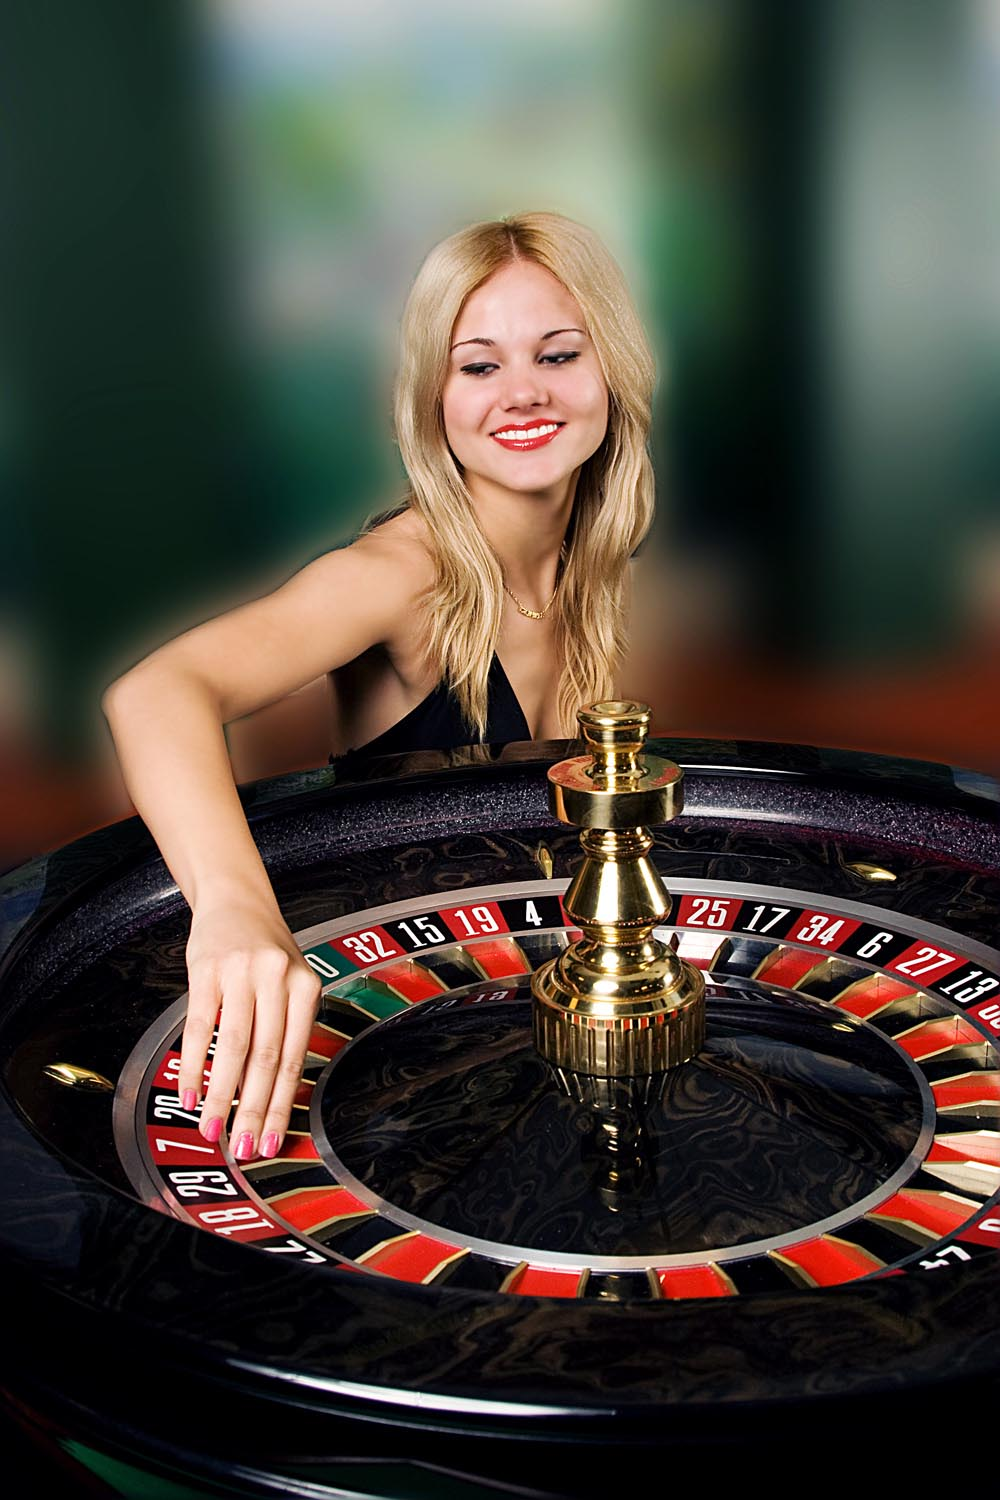 online casino play casino games casinos online